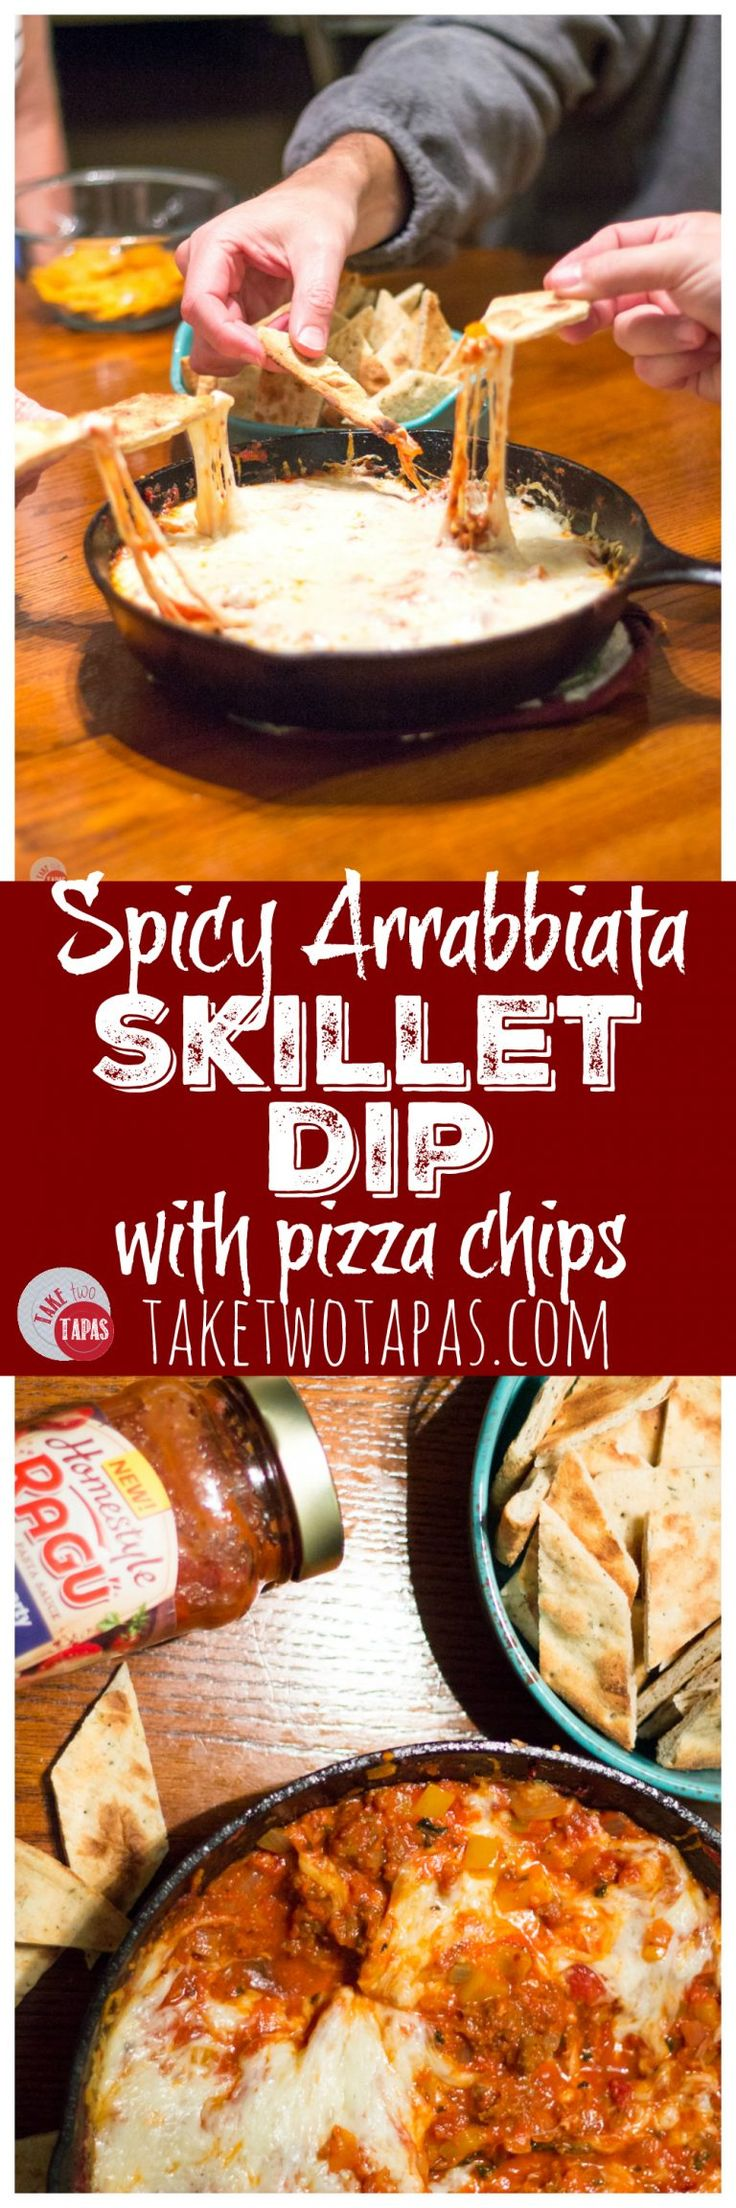 Slow simmered arrabbiata sauce mixed with sausage and veggies and topped with cheese makes the perfect dip to share with friends! Arrabbiata Skillet Sausage Dip with Pizza Chips Recipe | Take Two Tapas